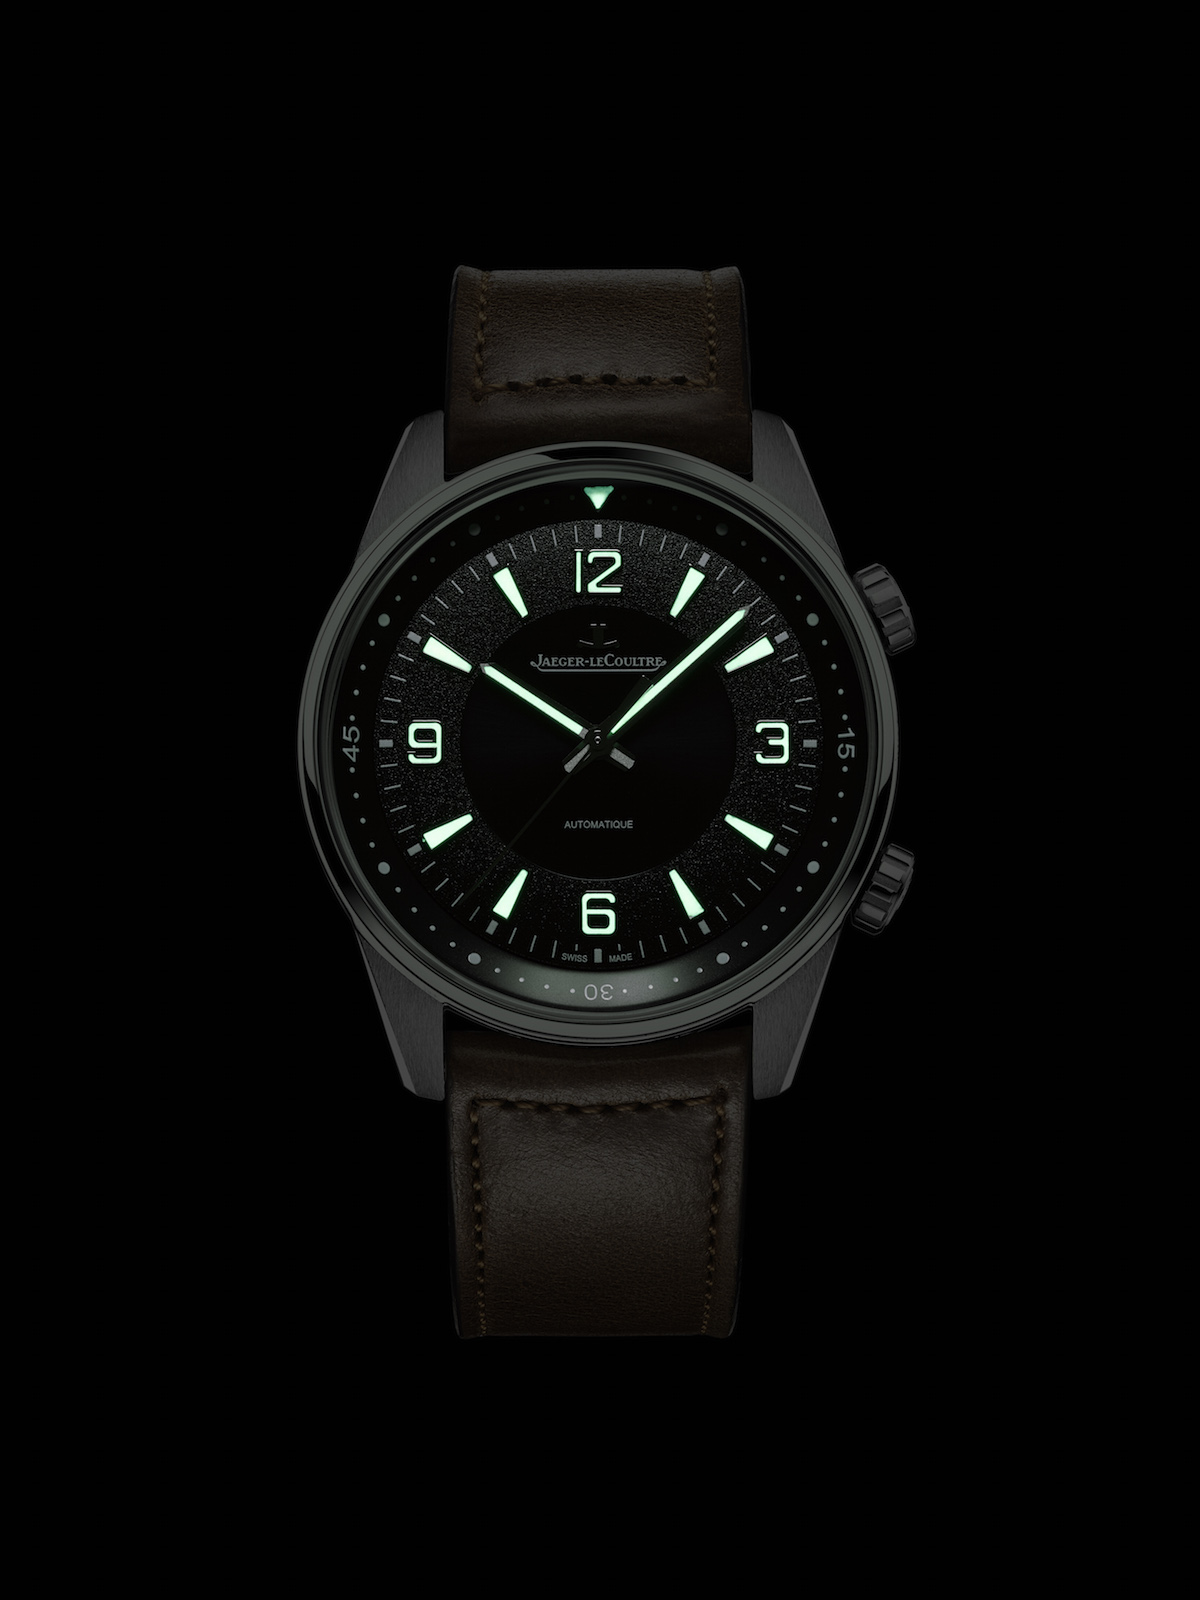 Night view of the Jaeger-LeCoultre Polaris Automatic with Super-LumiNova.